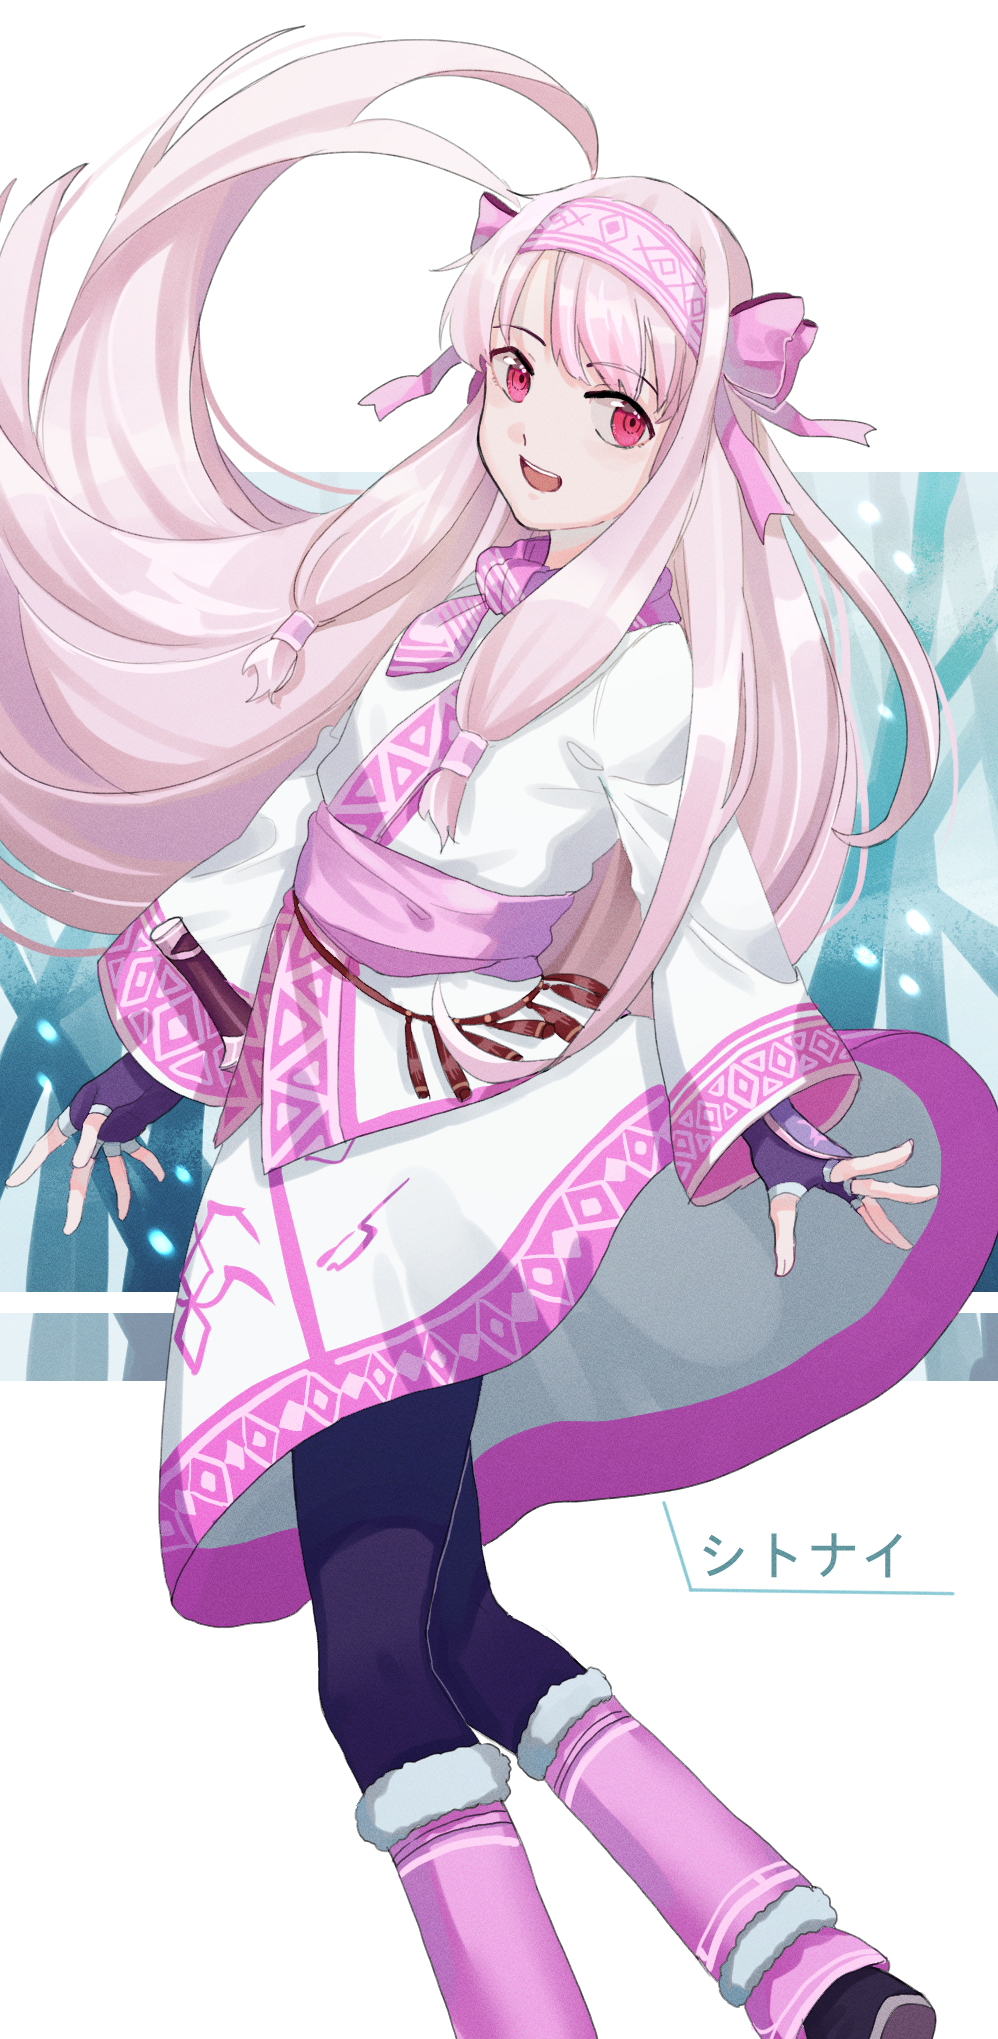 1girl :d ainu_clothes black_legwear character_name eyebrows_visible_through_hair fate/grand_order fate_(series) fingerless_gloves floating_hair fur-trimmed_legwear fur_trim gina_61324 gloves hairband highres leg_warmers long_hair long_sleeves looking_at_viewer medium_skirt necktie open_mouth outstretched_hand pantyhose pink_hairband pink_legwear pink_neckwear print_skirt purple_gloves red_eyes short_necktie silver_hair sitonai skirt smile solo standing very_long_hair white_skirt